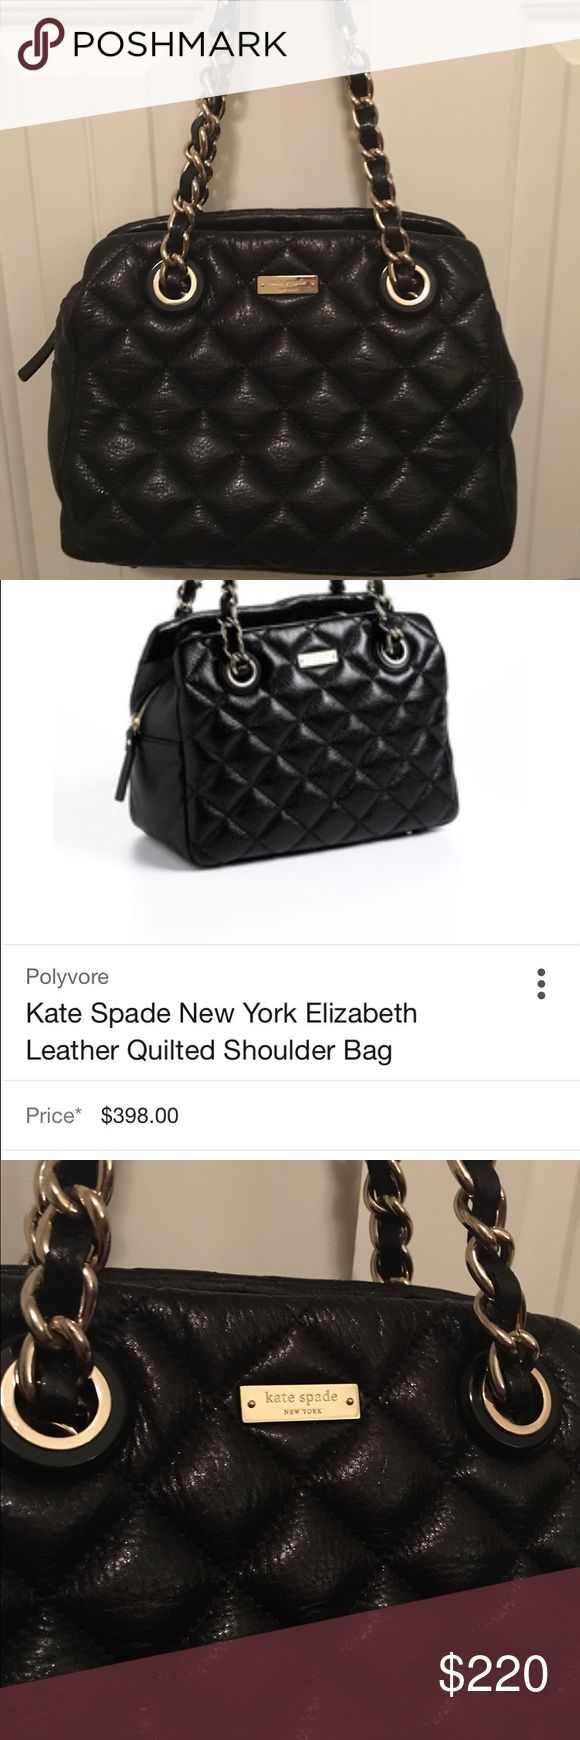 Kate Spade Gold Coast Quilted Leather Purse Used condition. No visible wear on exterior. Small stain on inside that can be cleaned. Priced accordingly. Retail at $398 kate spade Bags Crossbody Bags